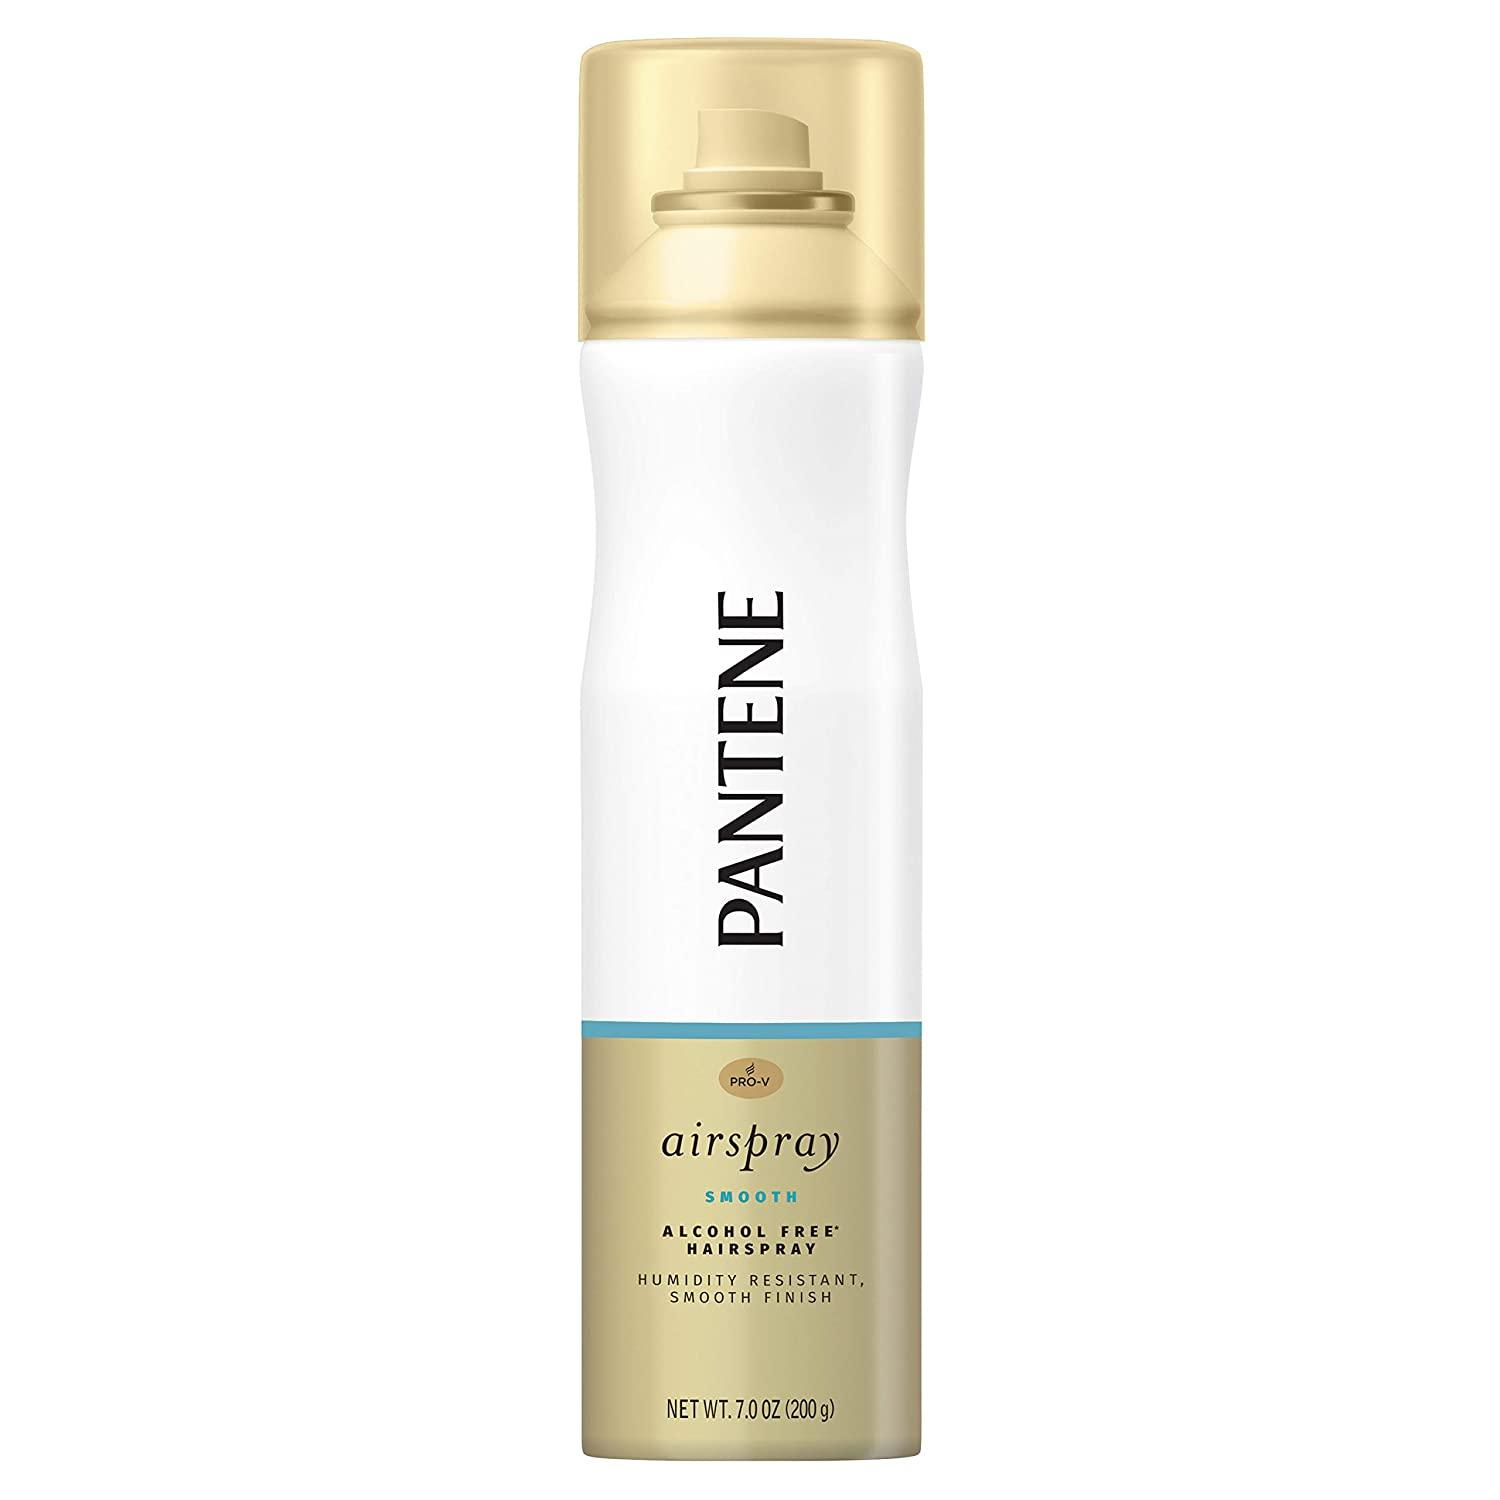 Pantene Pro-V Smooth Airspray Humidity Resistant Smooth Finish Hairspray, 7 oz